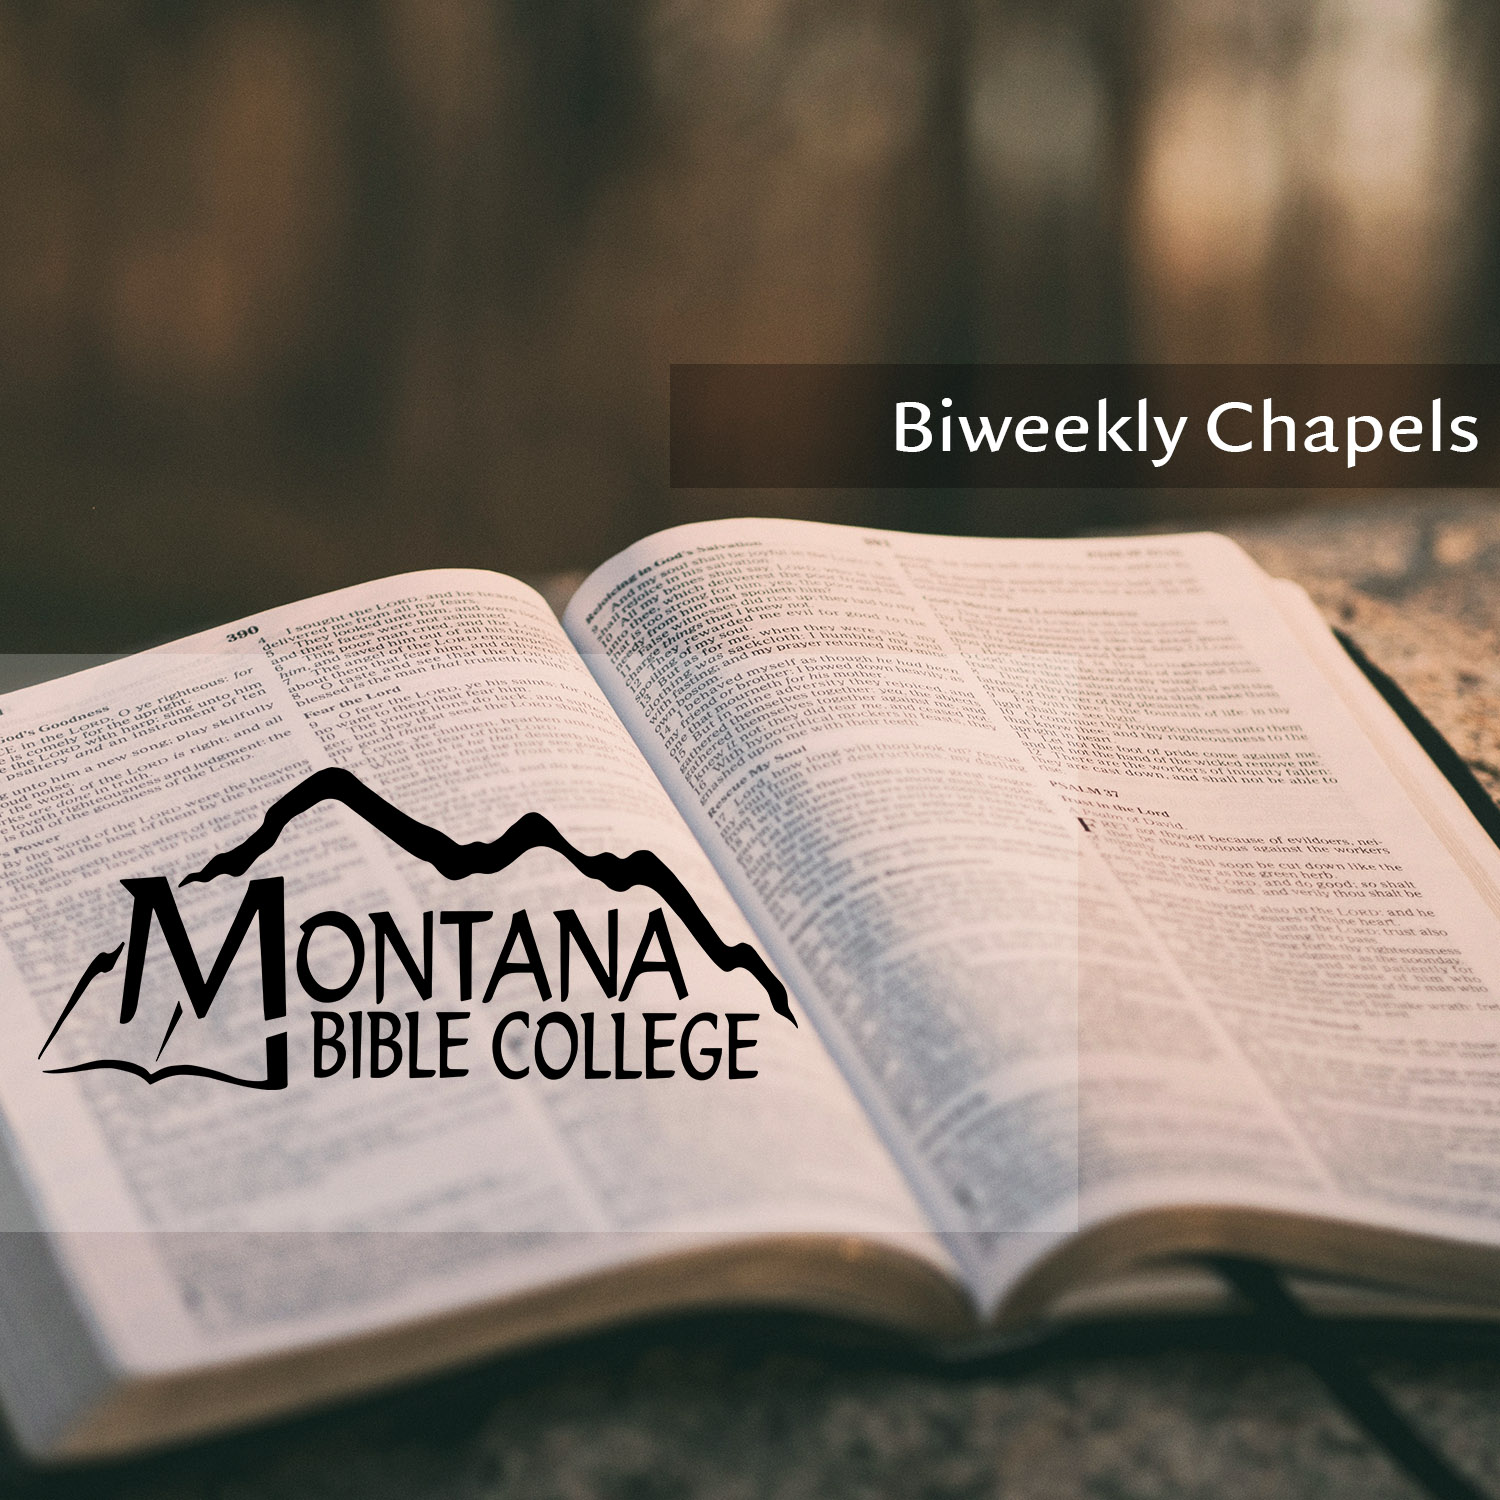 Montana Bible College Chapels